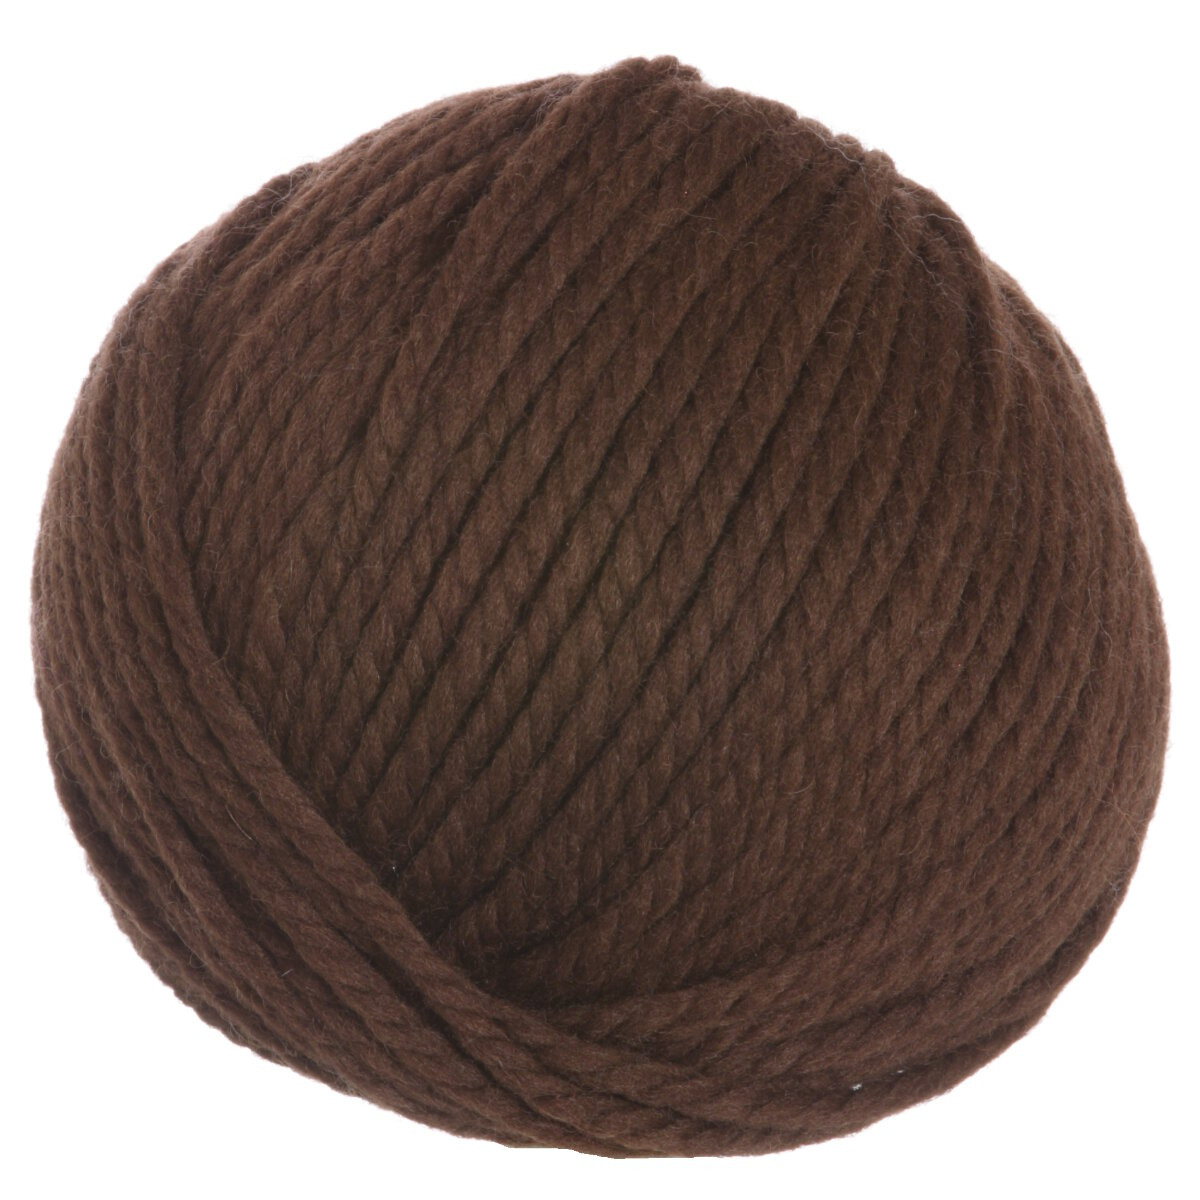 Rowan Big Wool Yarn 71 Stag Reviews at Jimmy Beans Wool